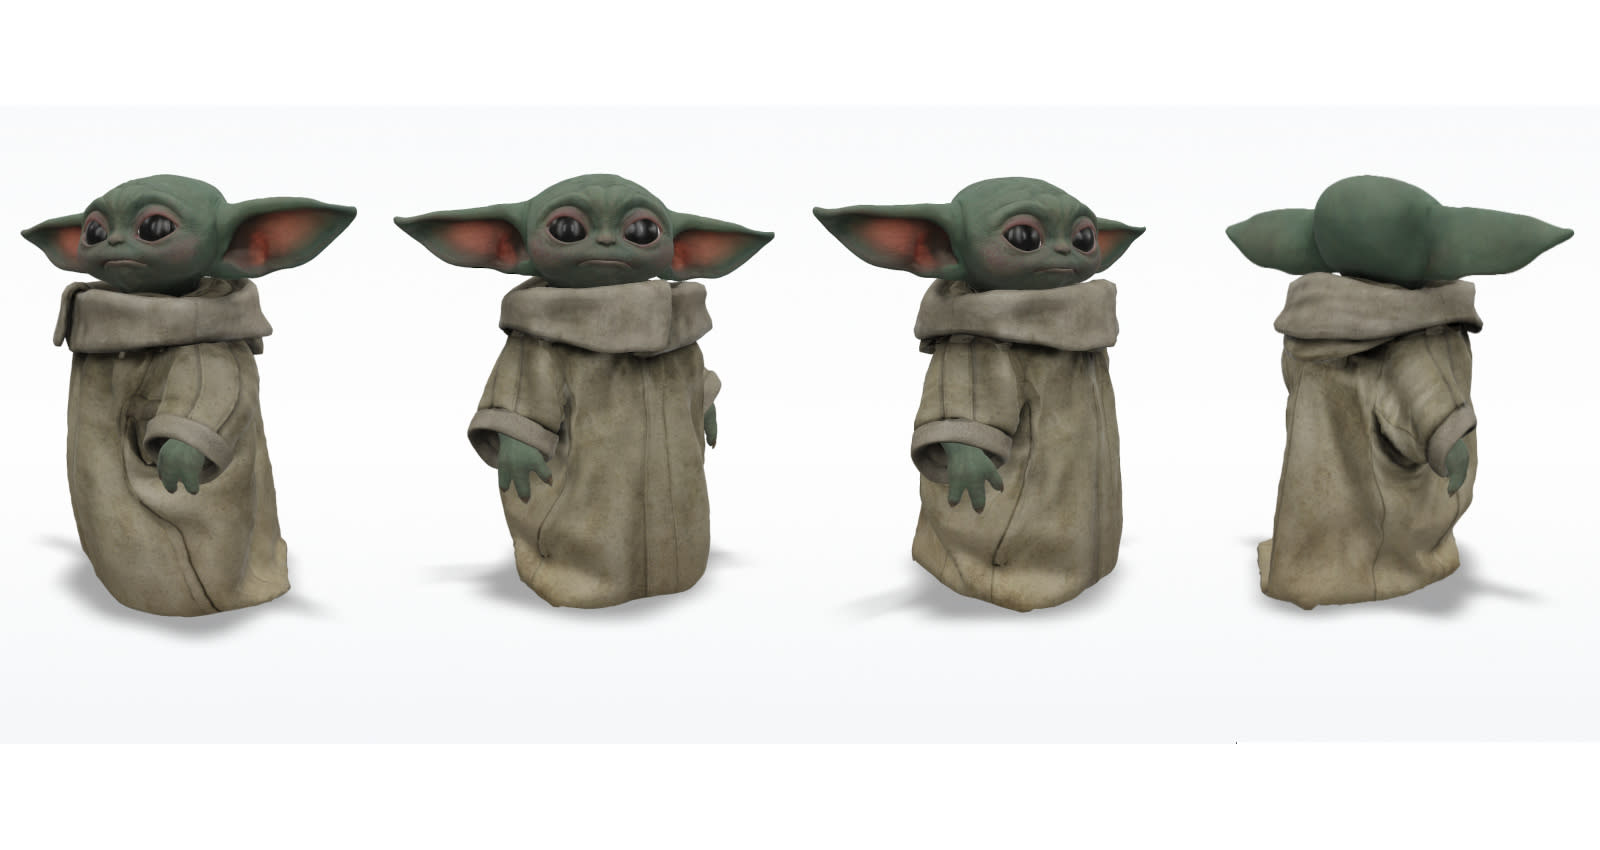 Google adds 'The Mandalorian's' Grogu as a 3D object on Search | Engadget